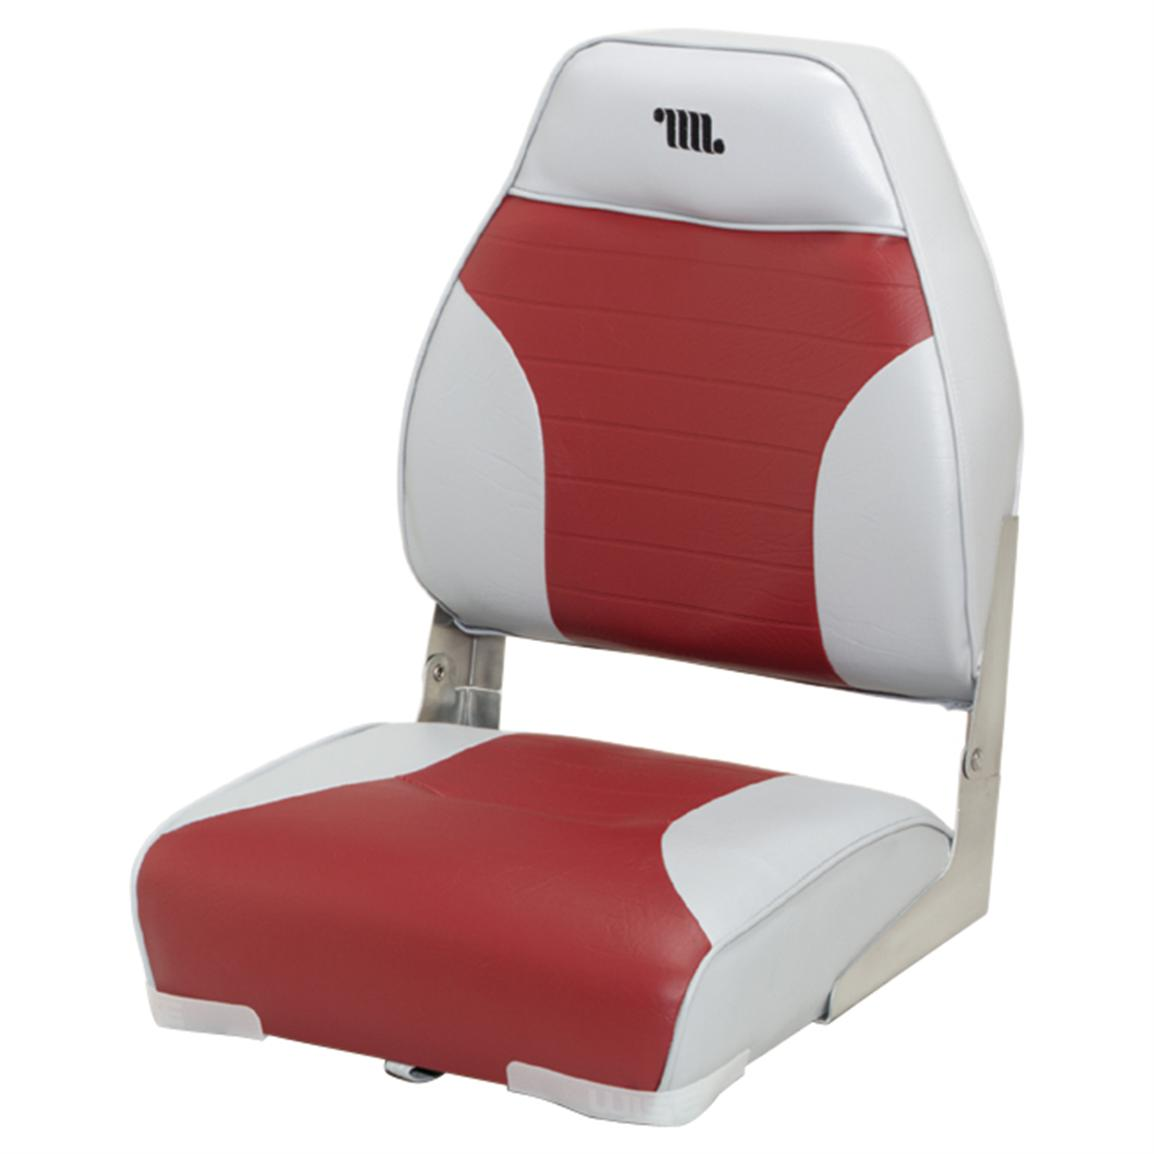 Wise Premium Folding Fishing Boat Seat, Grey / Red